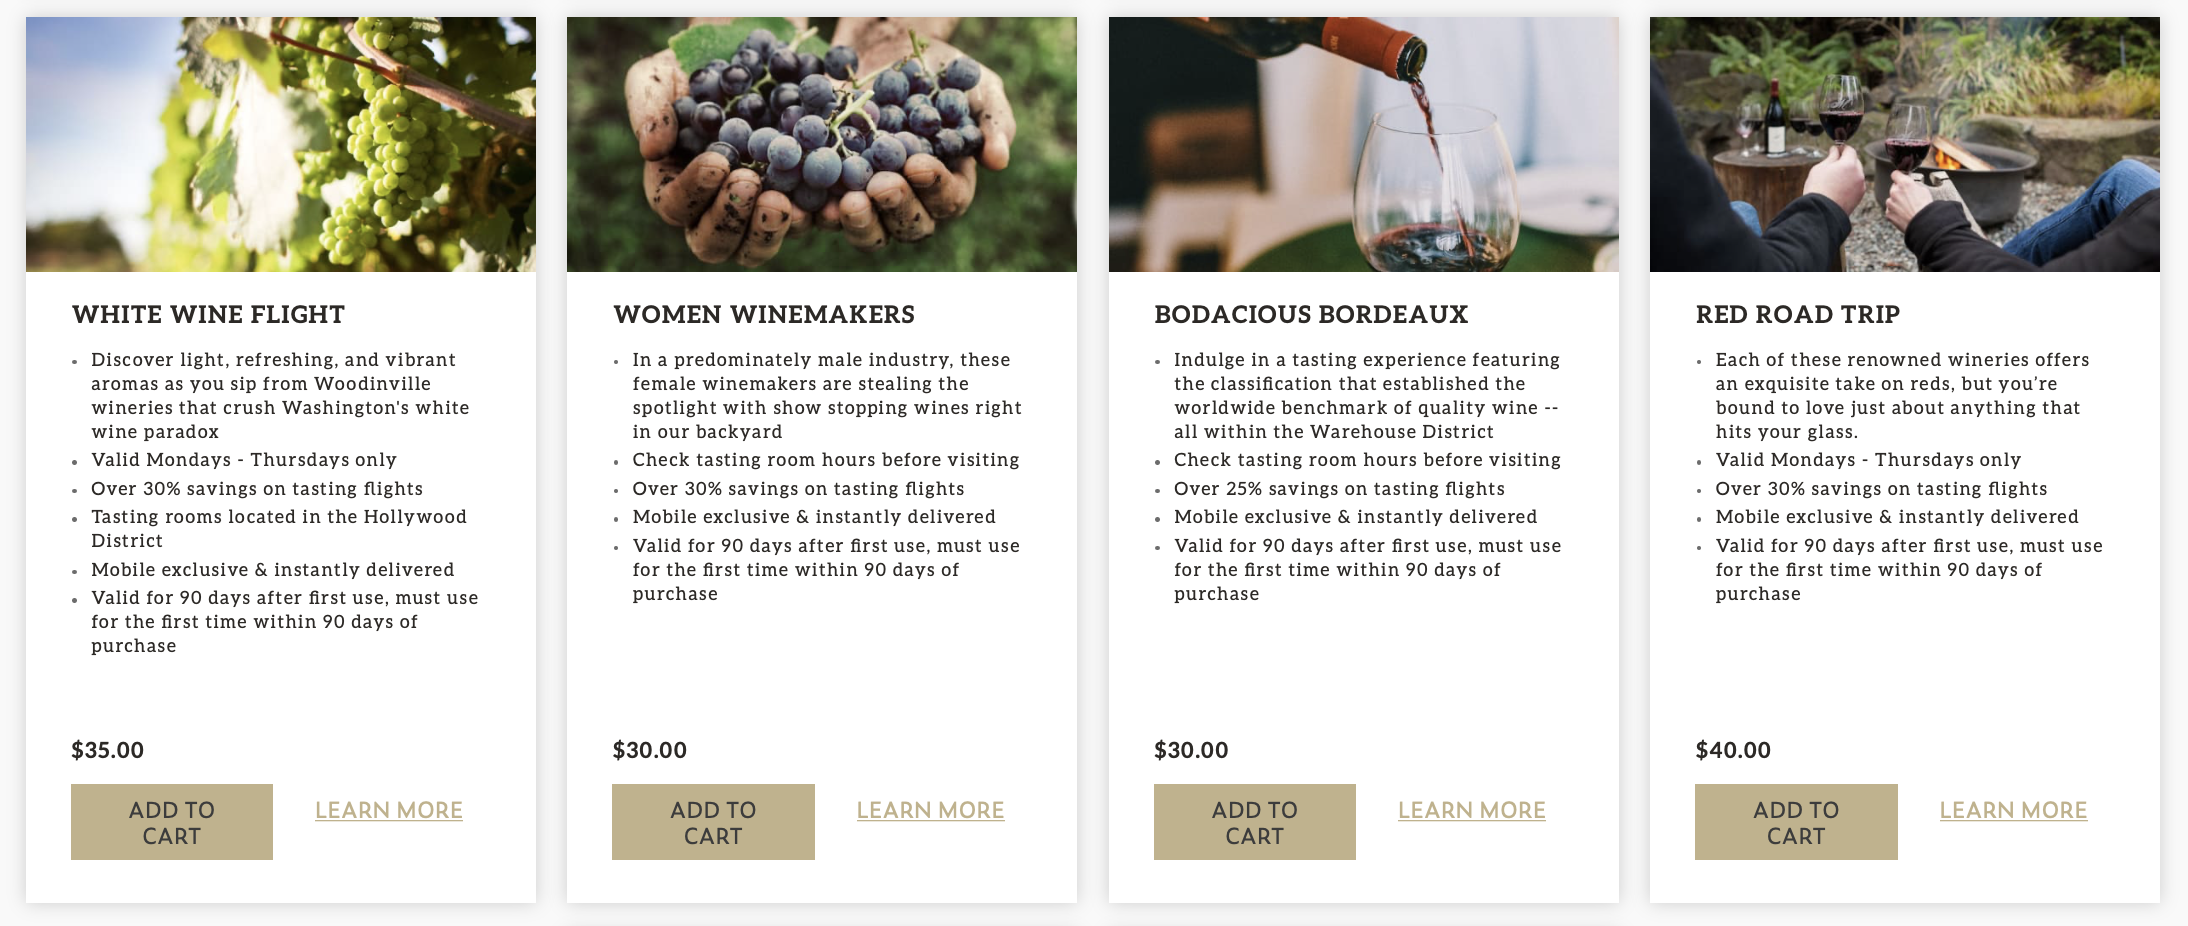 """A set of four images of green wine grapes in the sun, hands holding red grapes, red wine being poured into a glass, and two people cheersing with glasses full of red wine in front of fire, with text below, reading """"White Wine Flight,"""" """"Women Winemakers,"""" """"Bodacious Bordeaux,"""" """"Red Road Trip."""""""